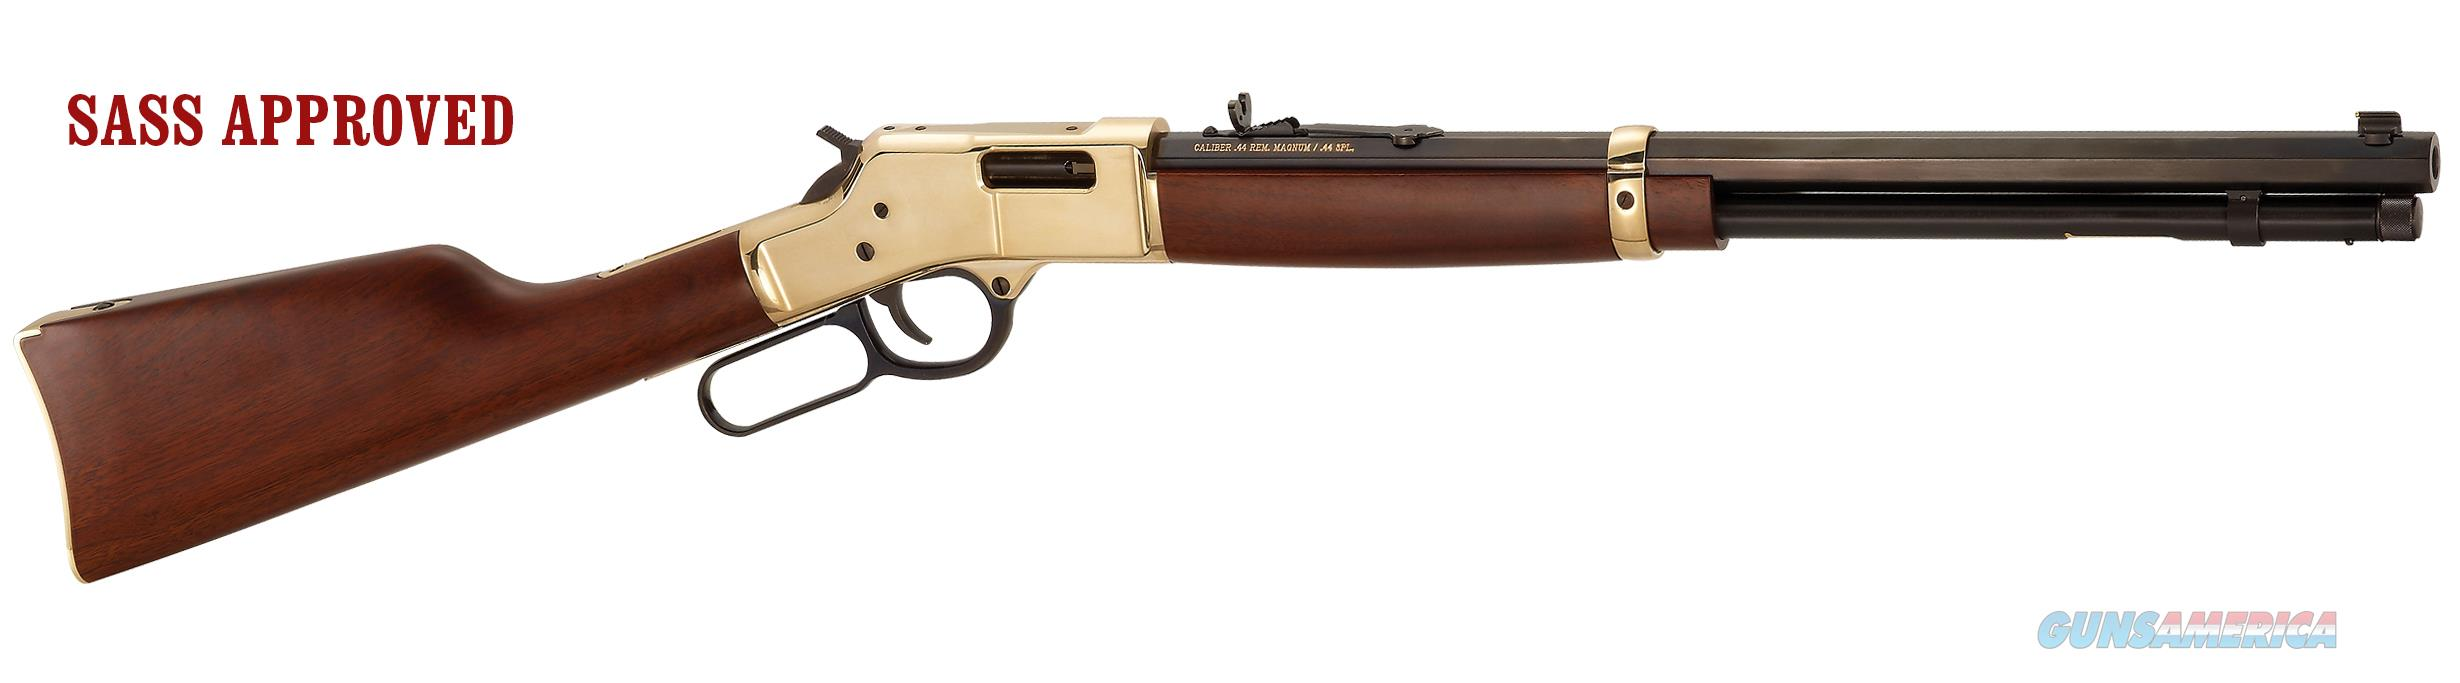 "Henry Big Boy, 44 Mag, 20"" barrel, 10 shot, Brass receiver, Mfg# H006, NIB  Guns > Rifles > Henry Rifle Company"